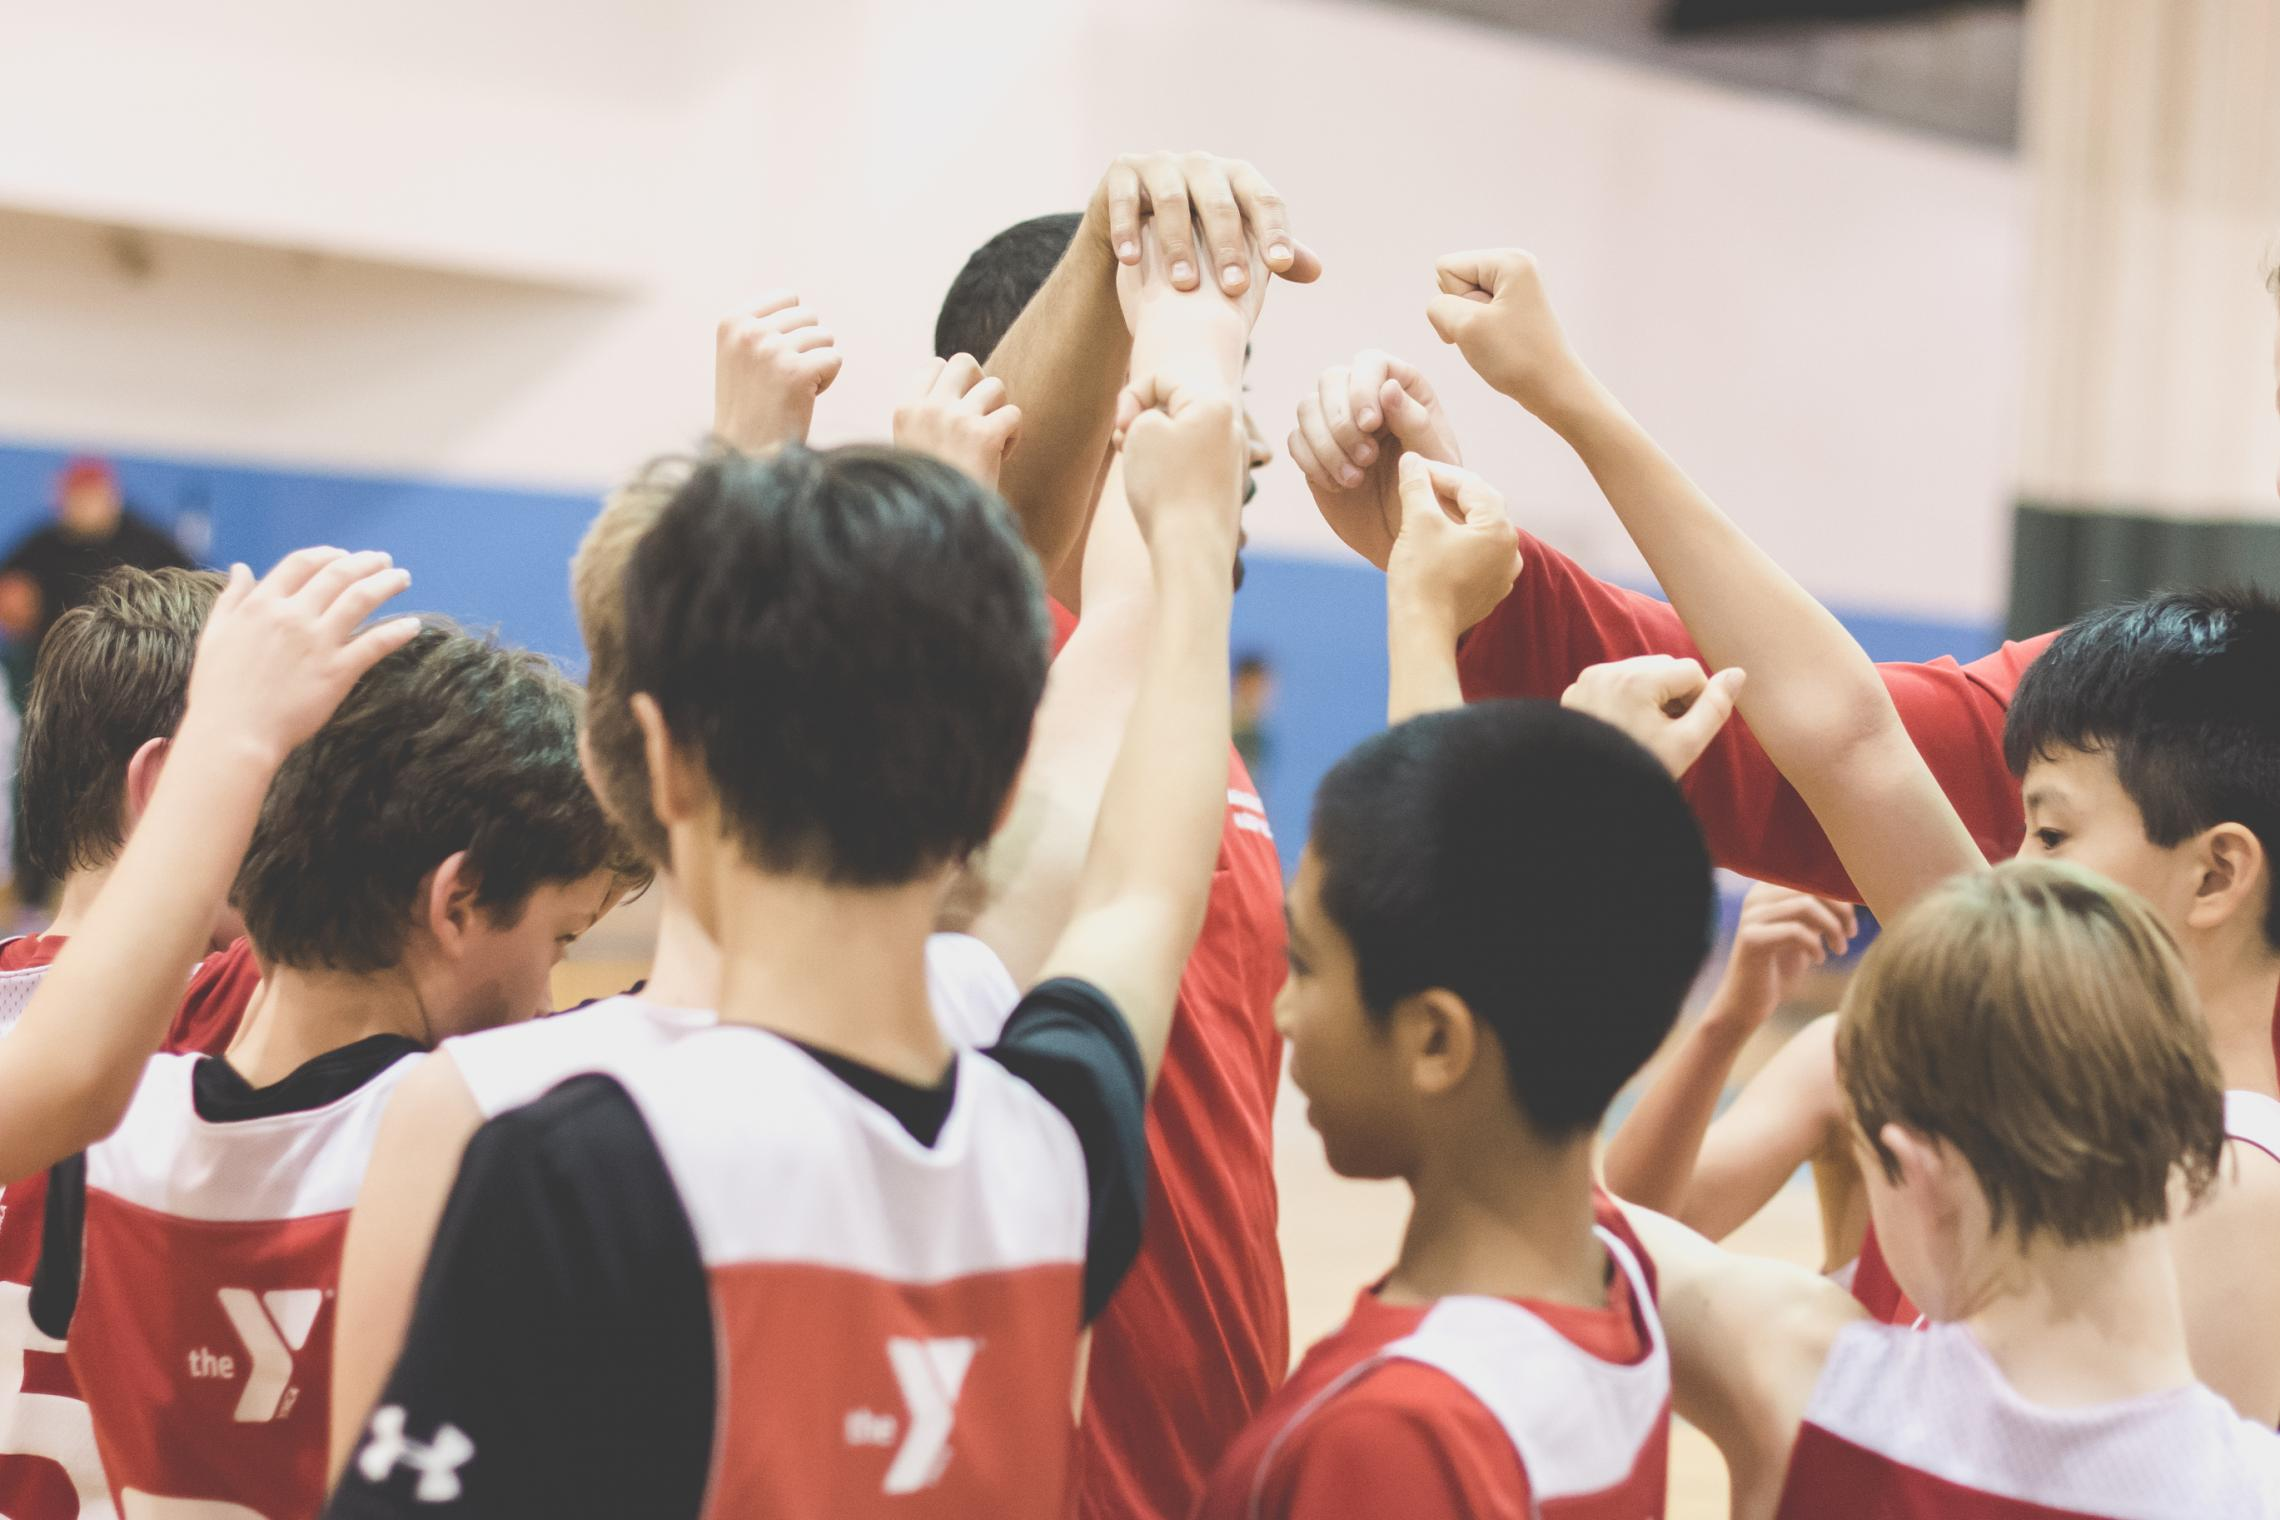 Youth basketball team gathers for huddle